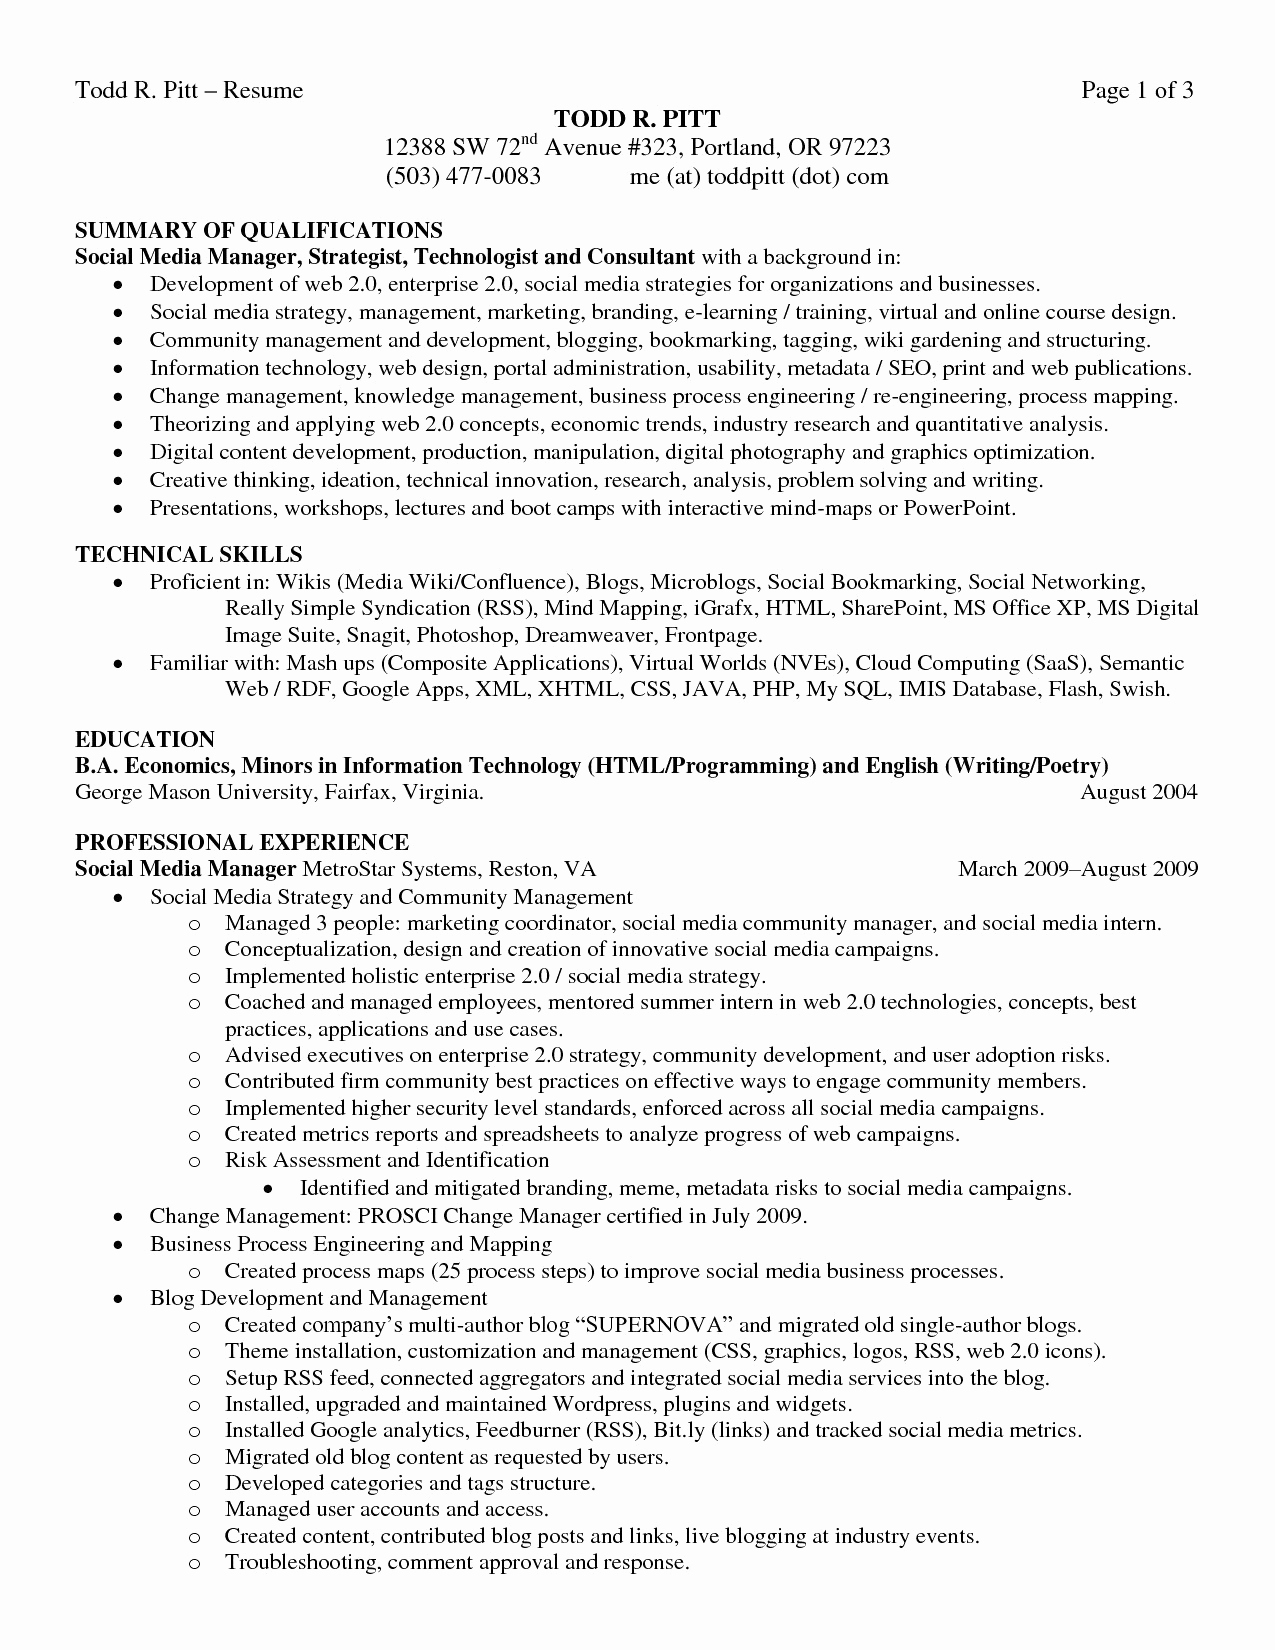 Resume Words To Use Resume Keywords And Phrases Best Of Words To Use In A Resume Lovely